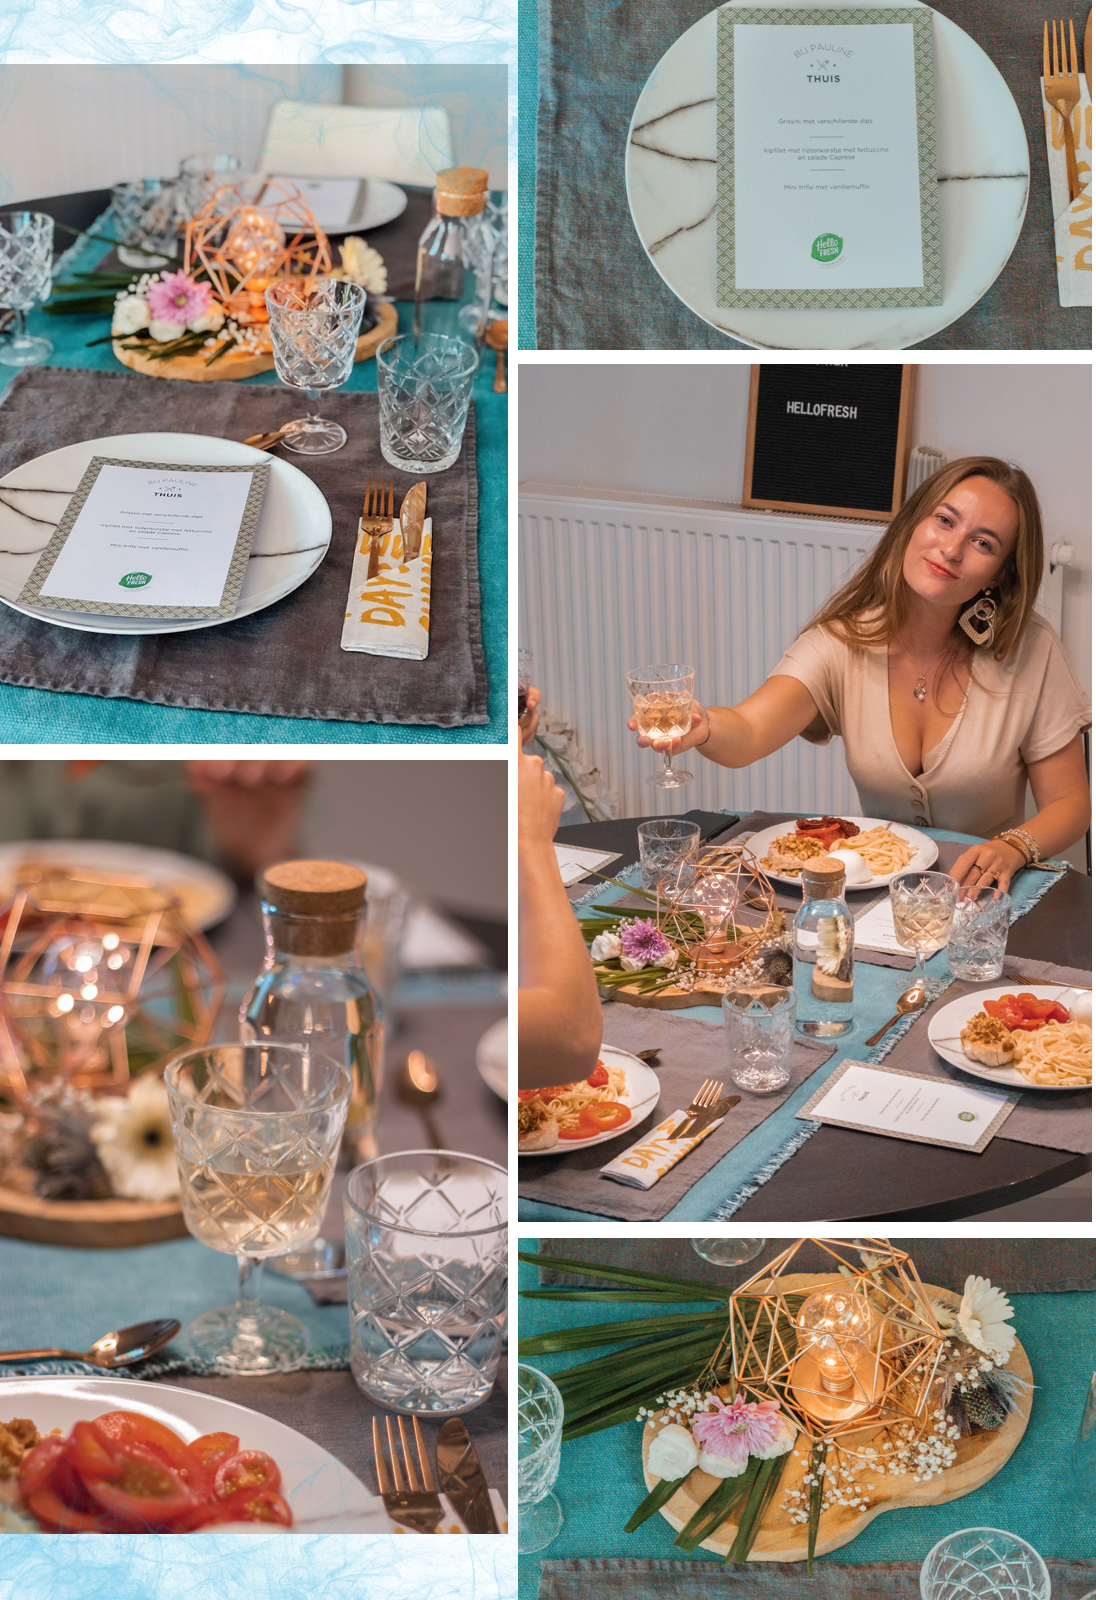 Uit Pauline's Keuken Hellofresh Premium Dinner Van Hellofresh A Fashion Taste